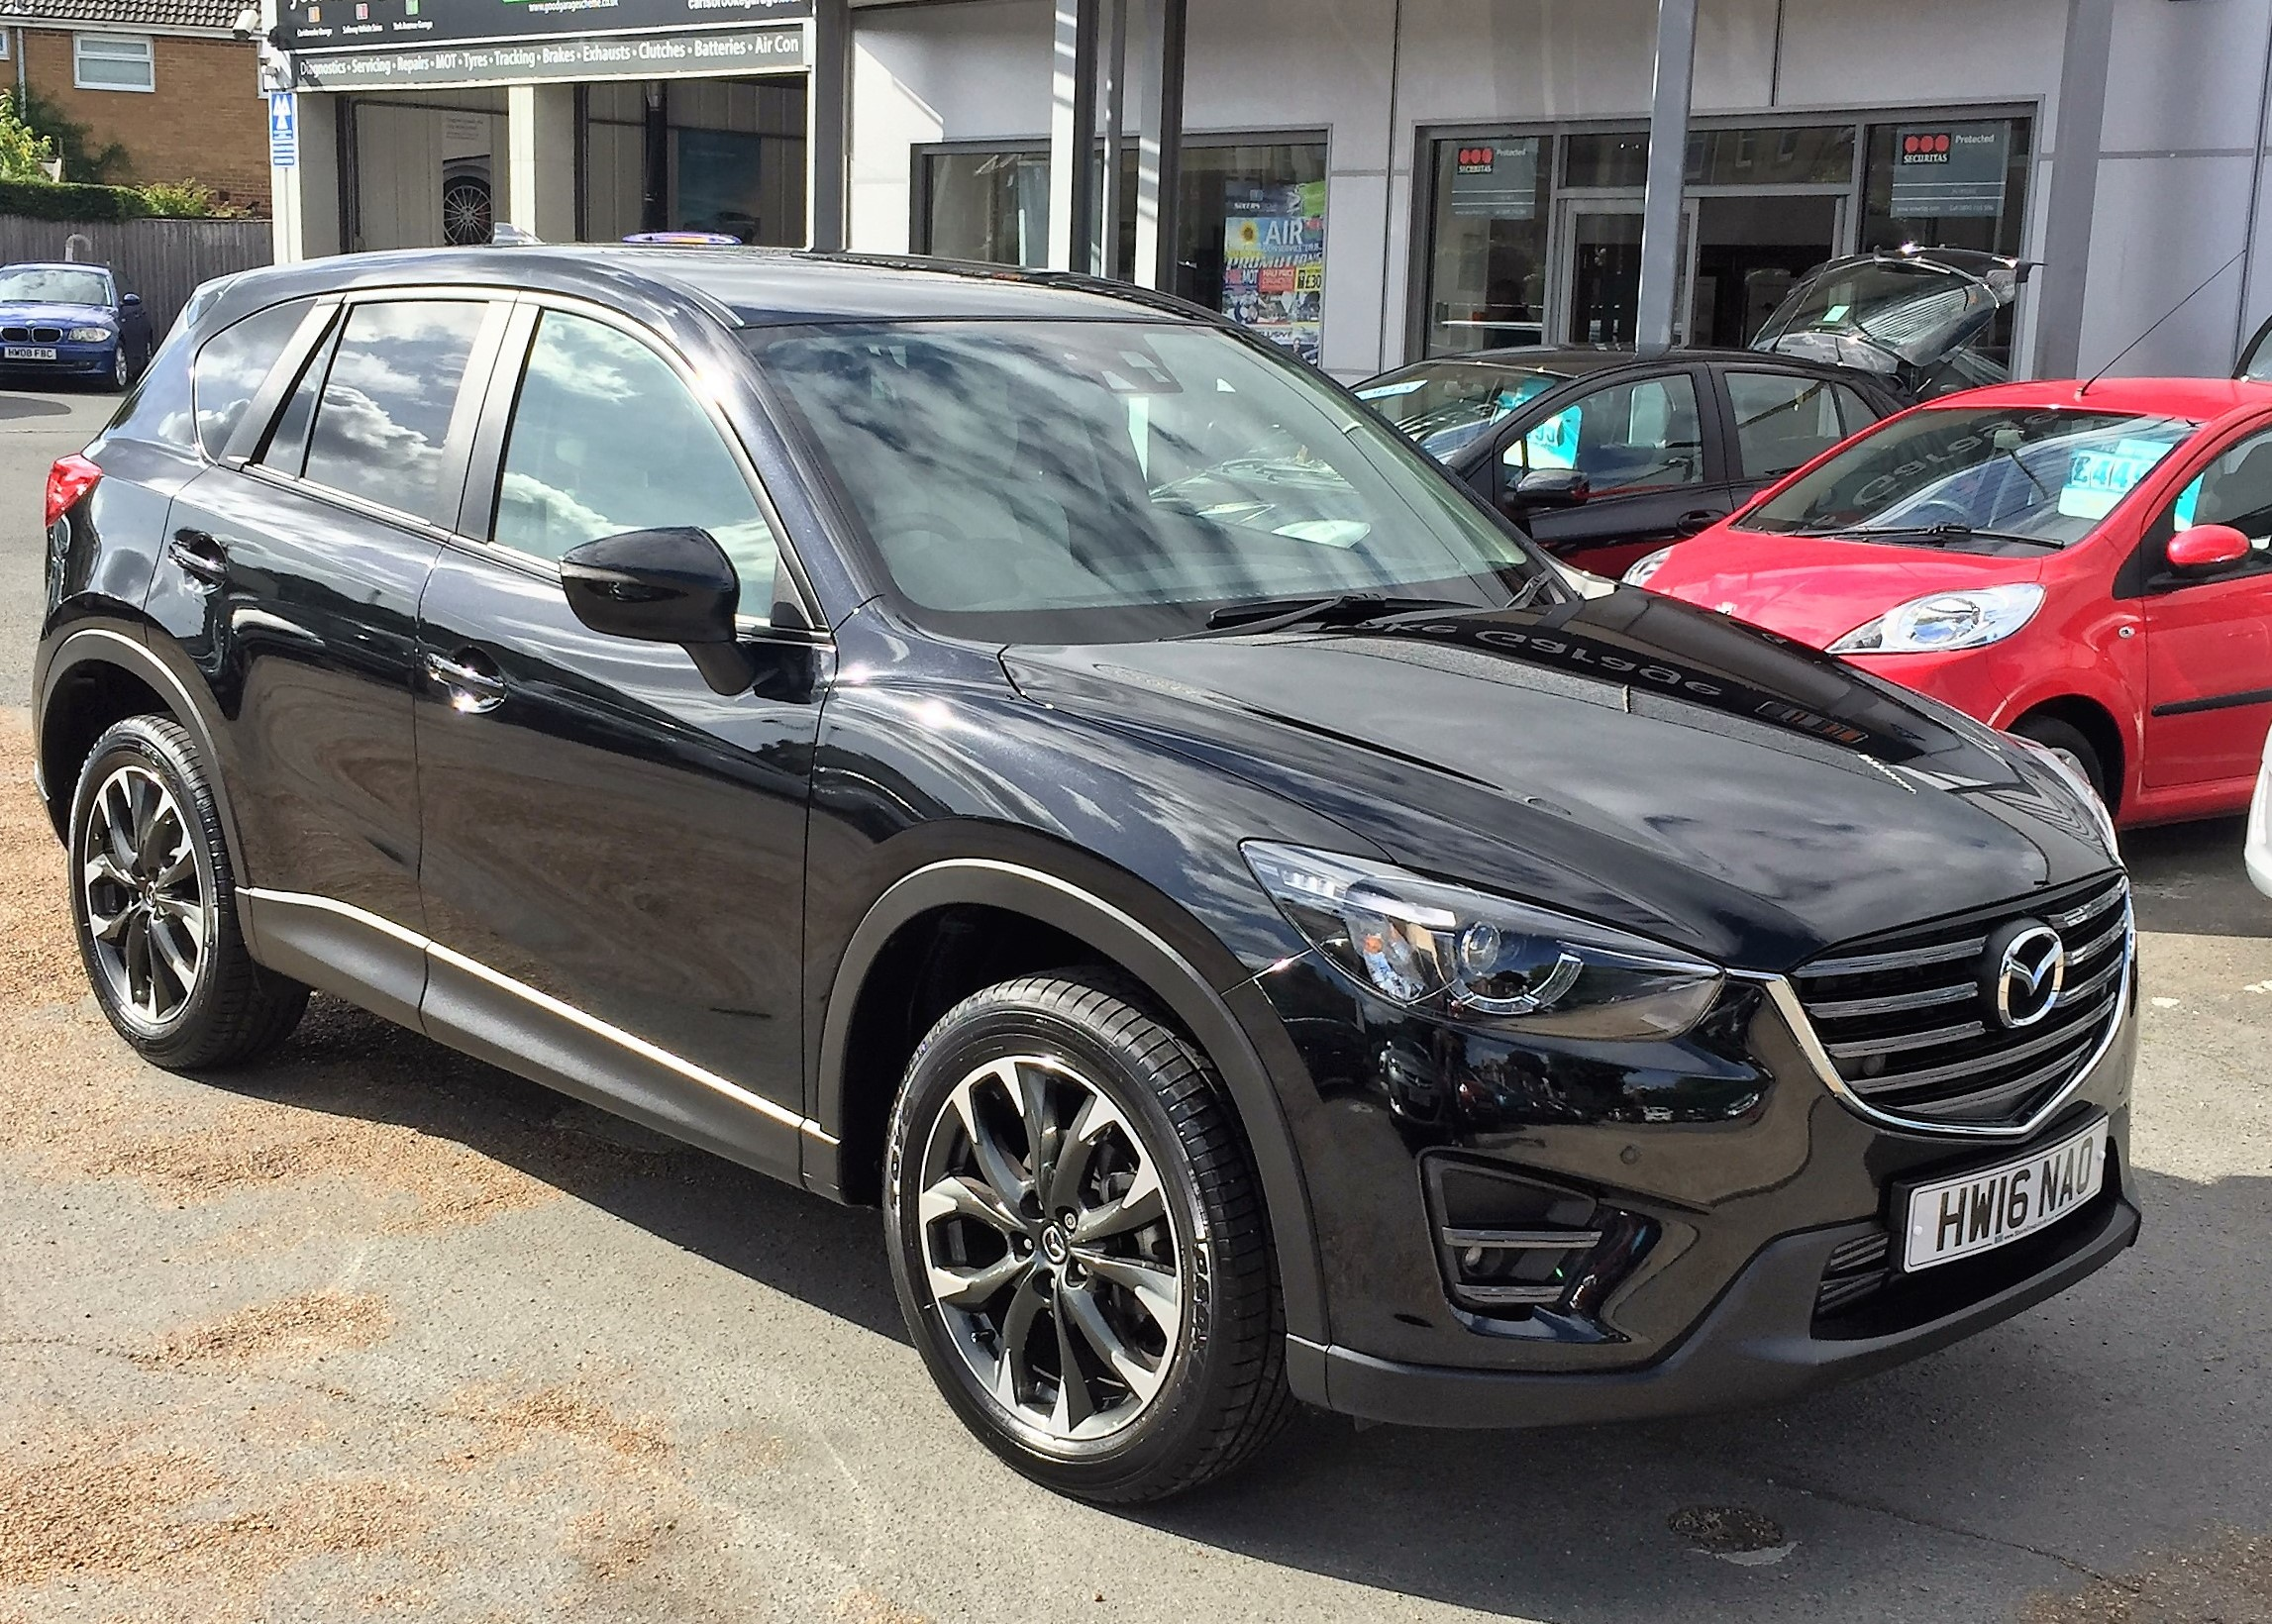 Image of Mazda CX-5 Used Car For Sale on the Isle of Wight for Vehicle 5465